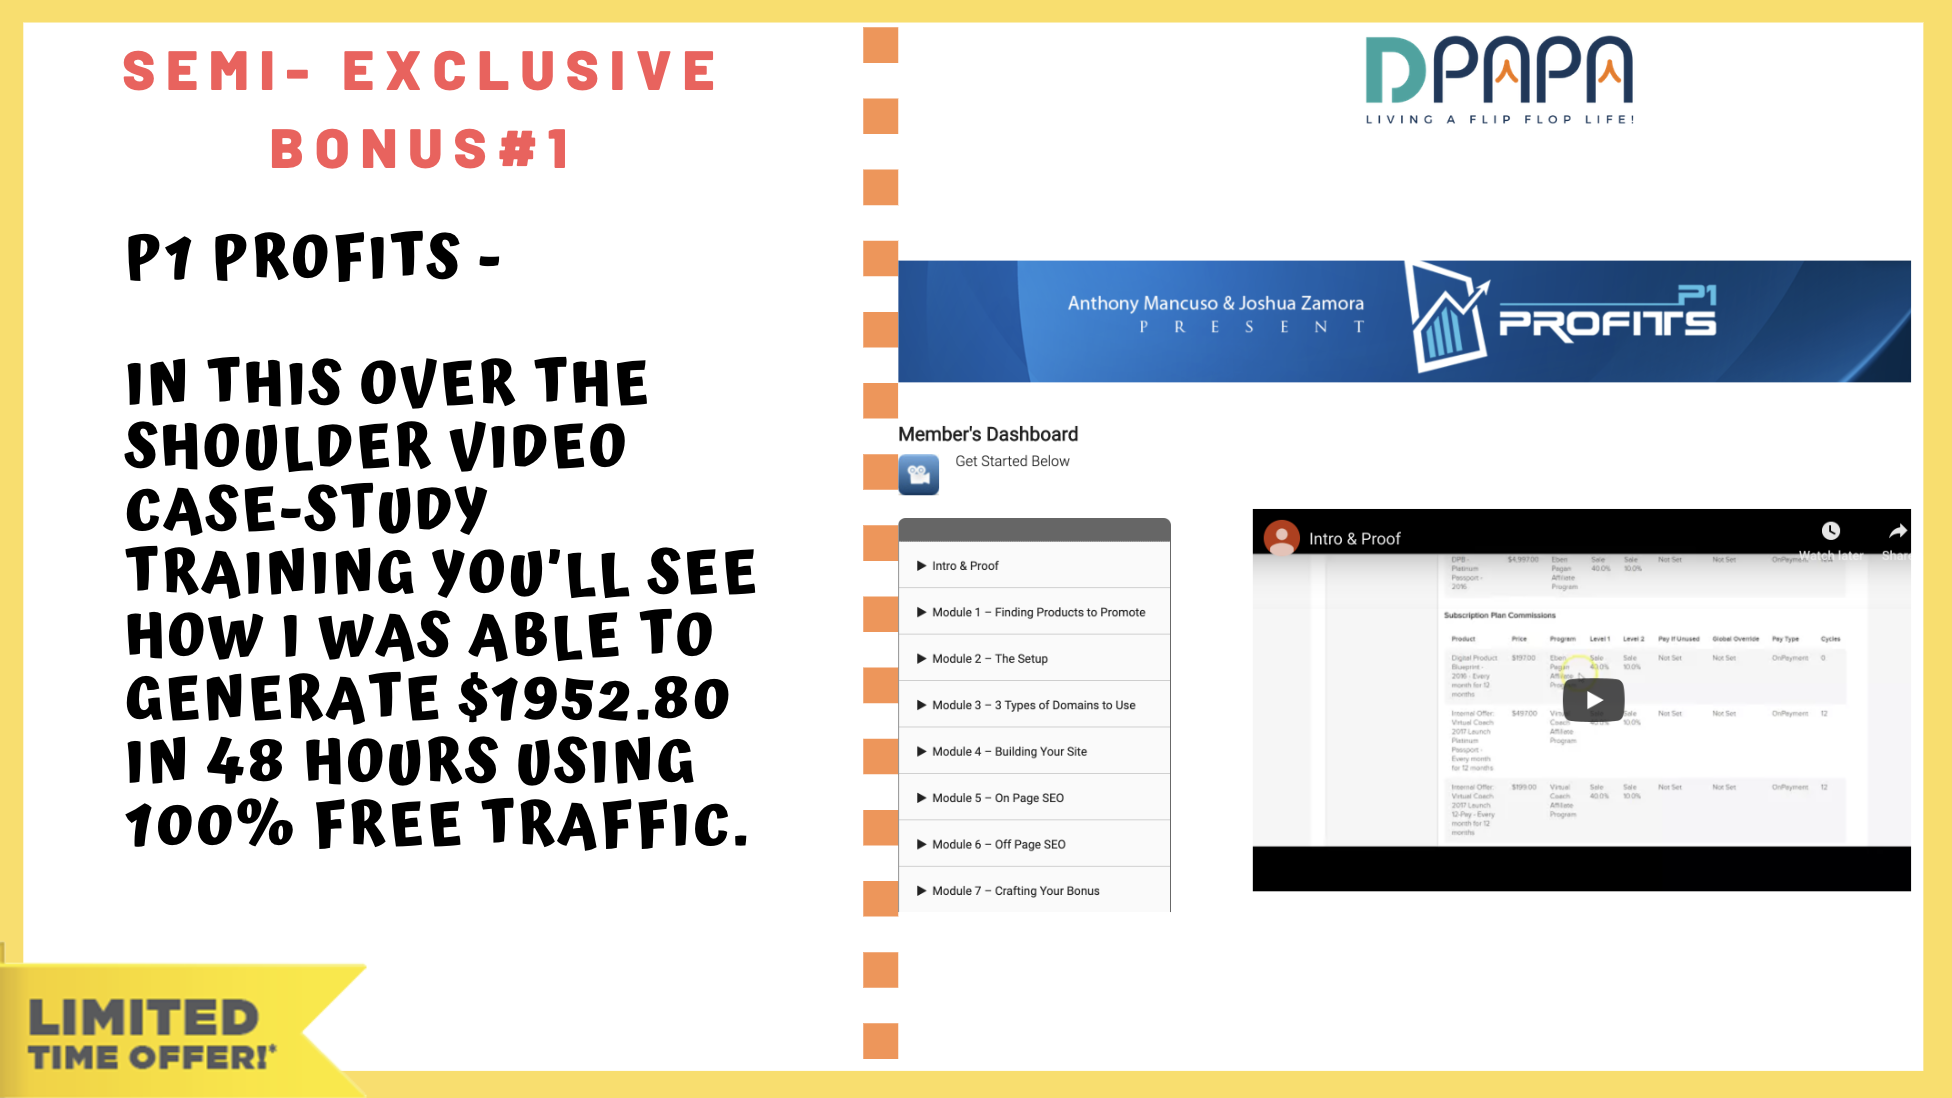 Follow and copy this proven affiliate marketing formula (free training video + proof) 11